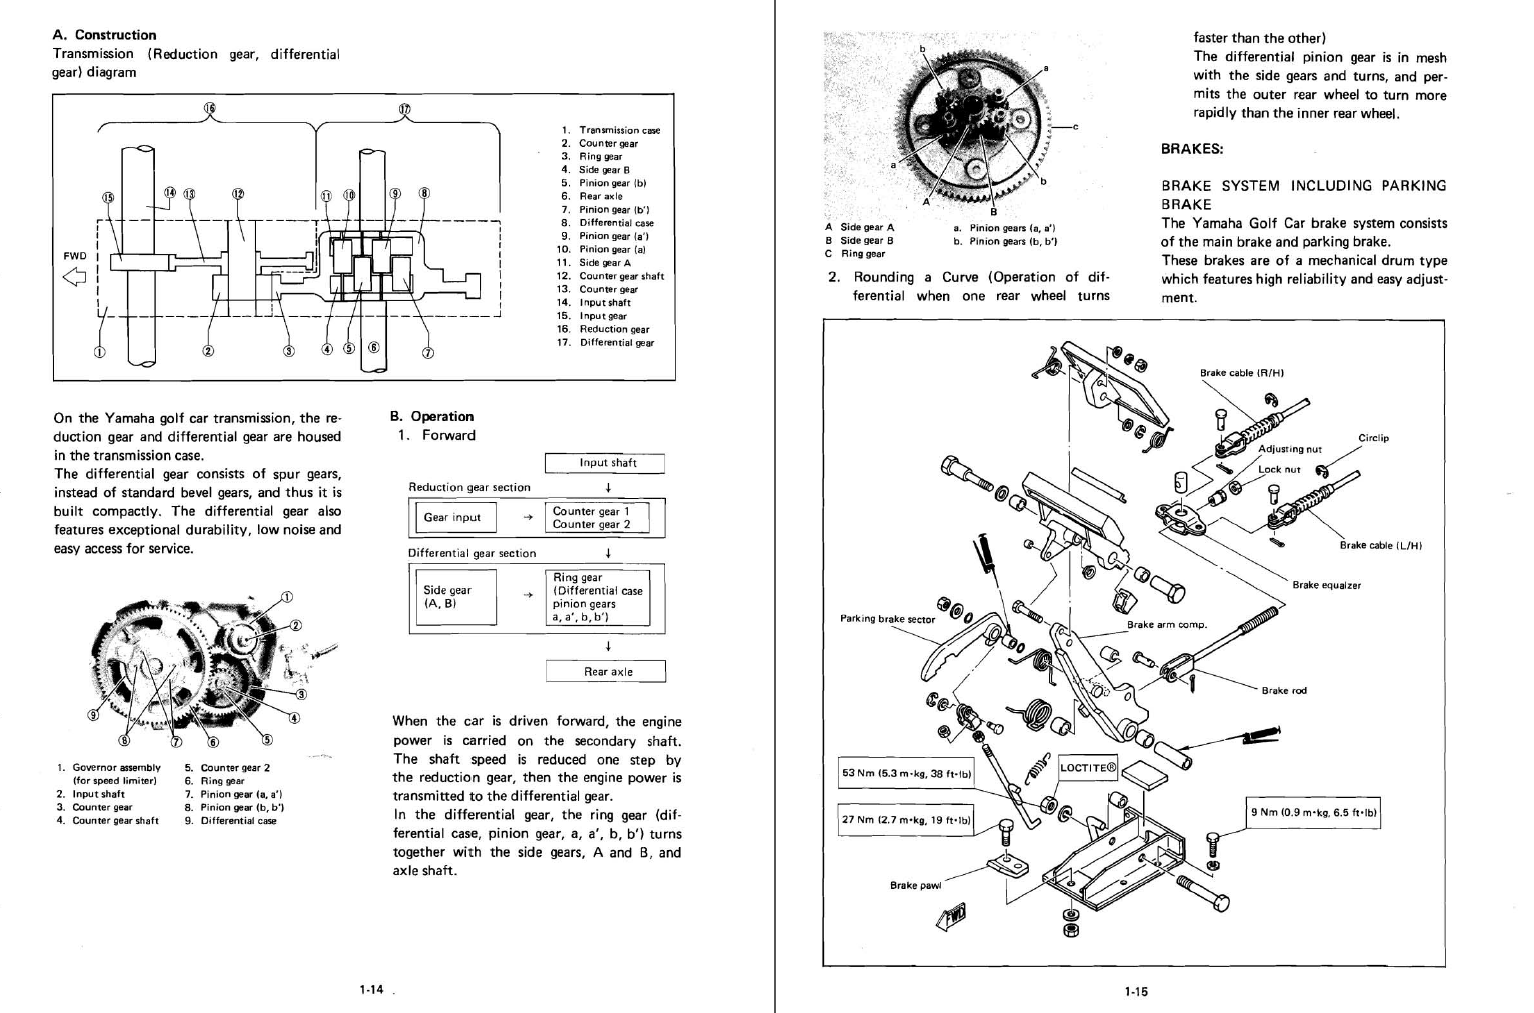 yamaha g22a wiring diagram 1983-1989 yamaha g1 golf car service manual lit-11616-03 ... #9